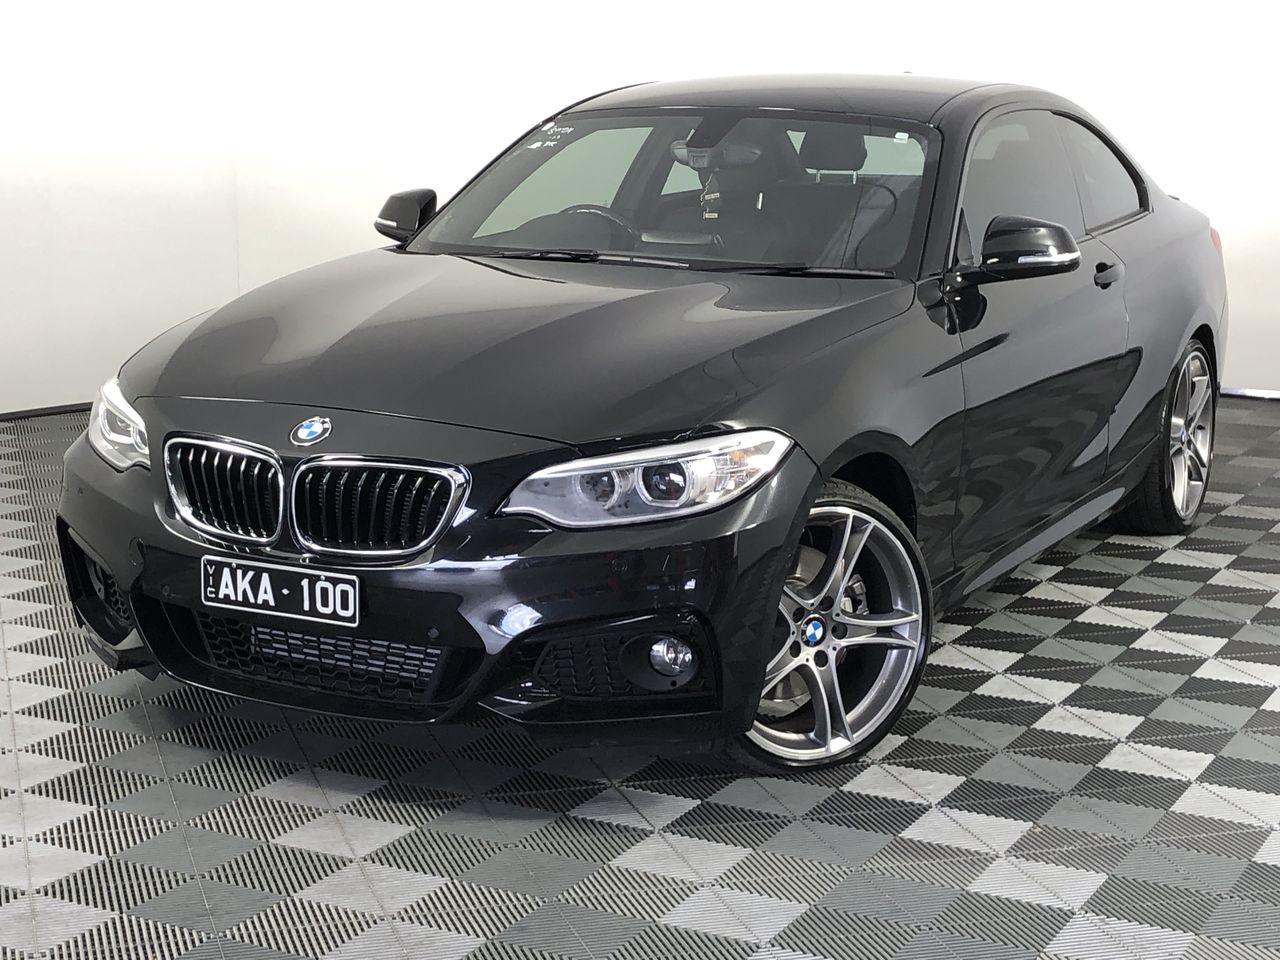 2015 BMW 2 Series 228i F22 Automatic - 8 Speed Coupe